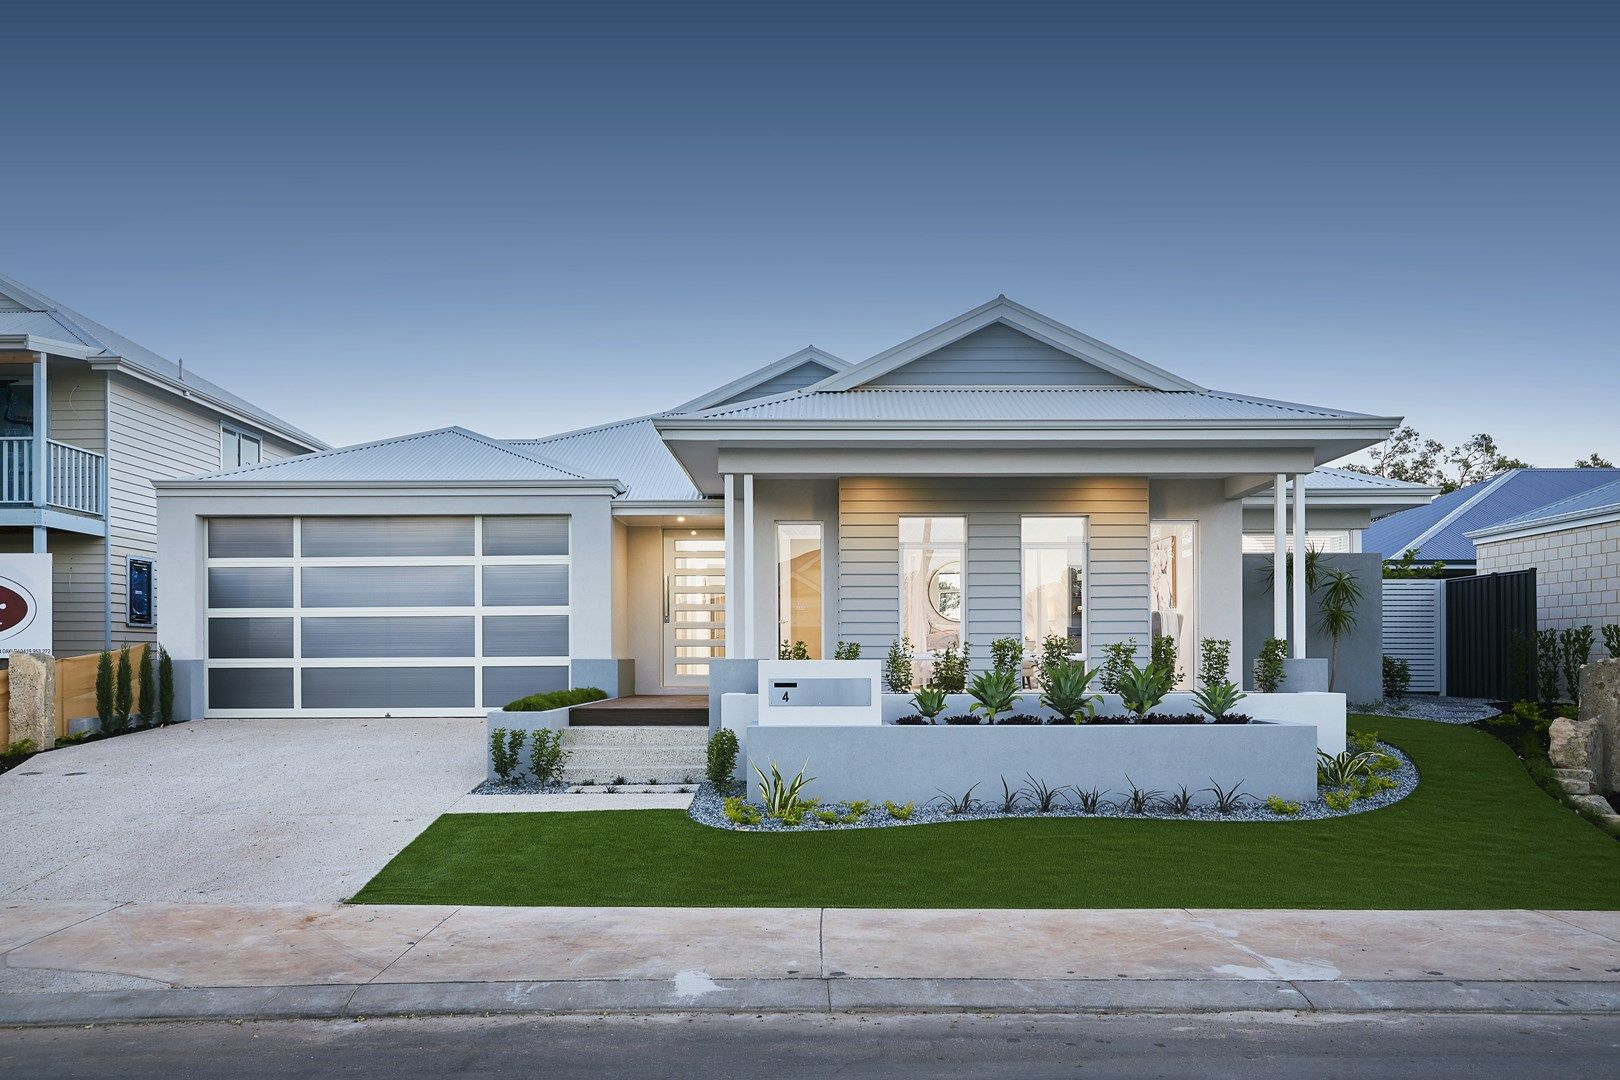 Piara waters wa 6112 4 beds house for sale turn key from 525569 piara waters wa 6112 image 0 malvernweather Image collections